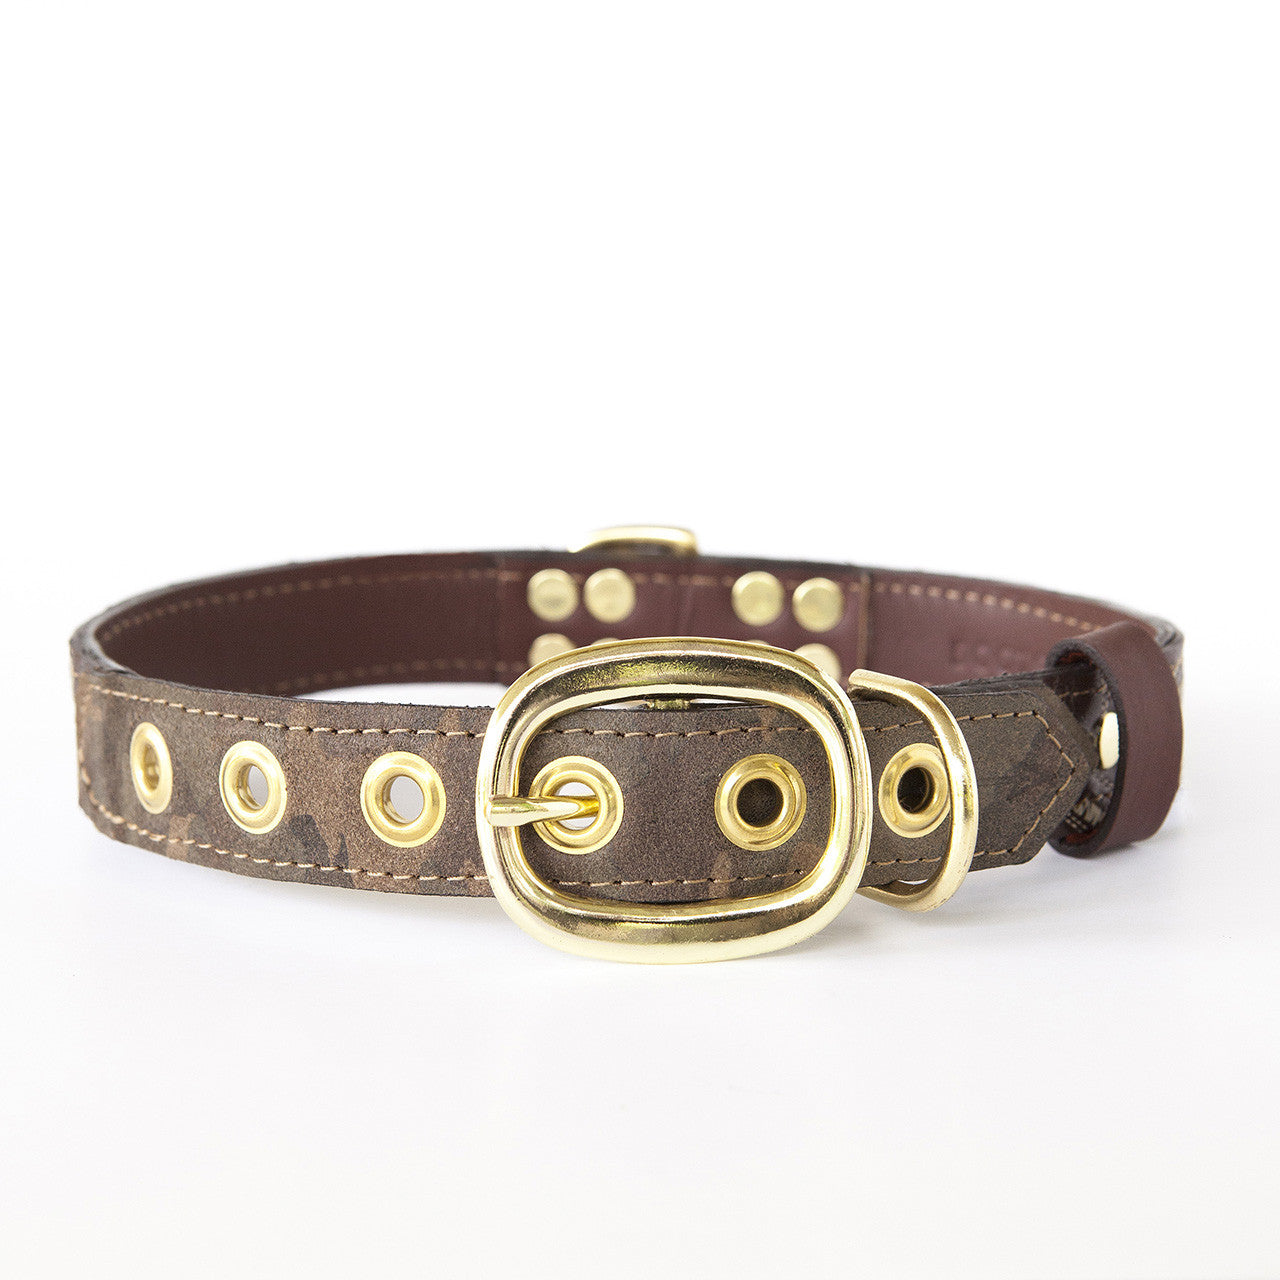 Camo Dog Collar with Chocolate Leather + Ivory Swirl Stitching (back view)